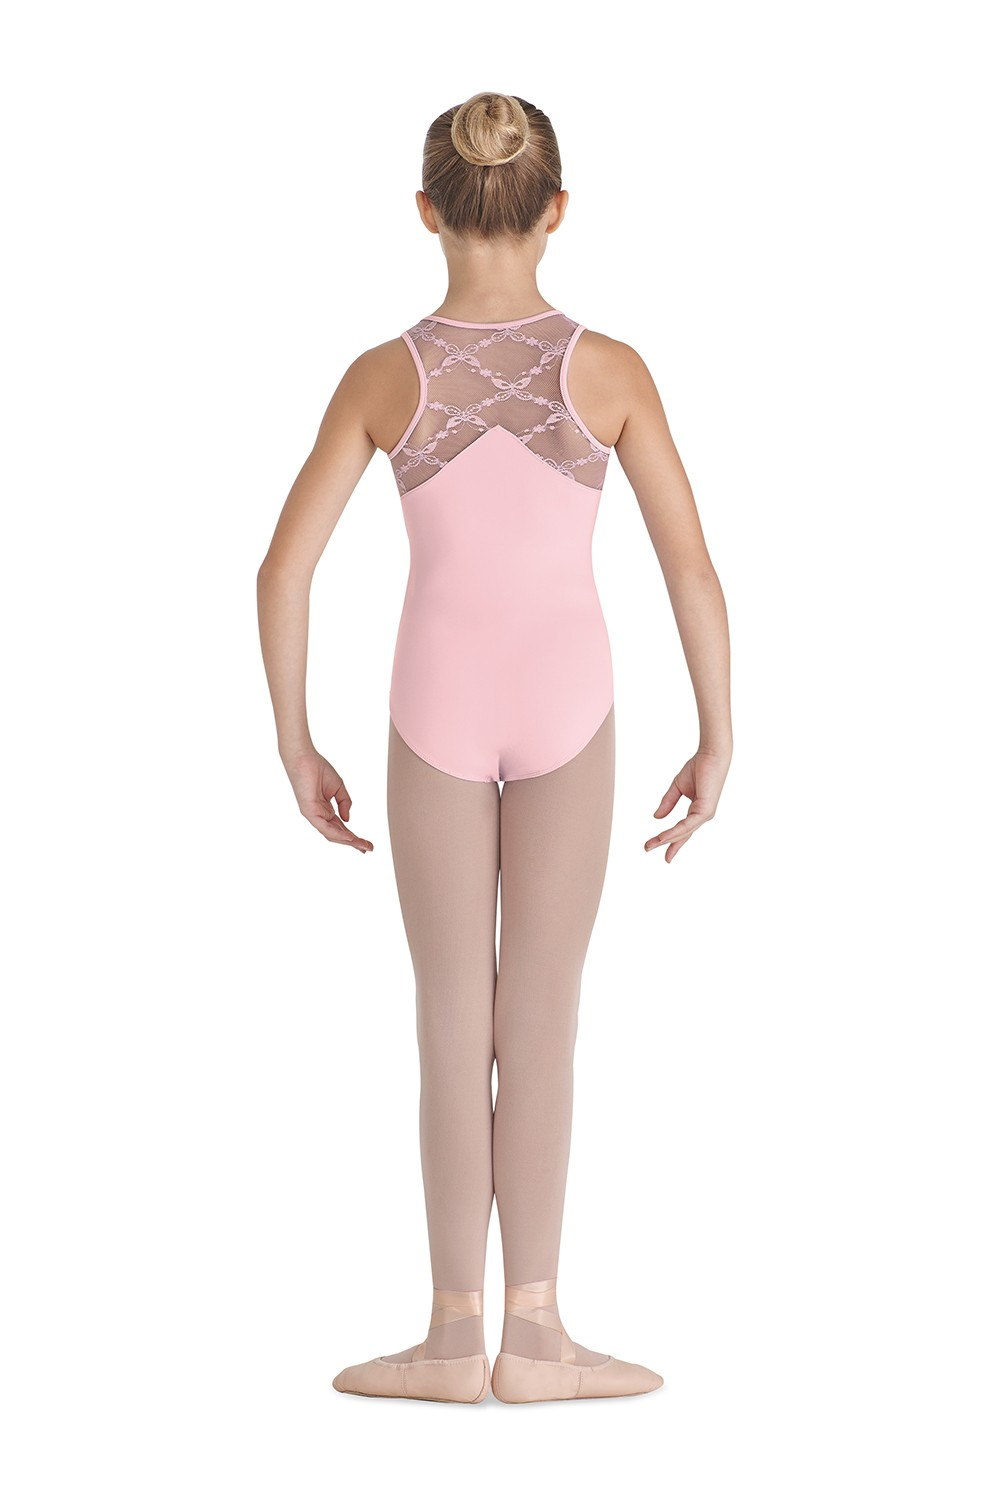 Menuha Children's Dance Leotards